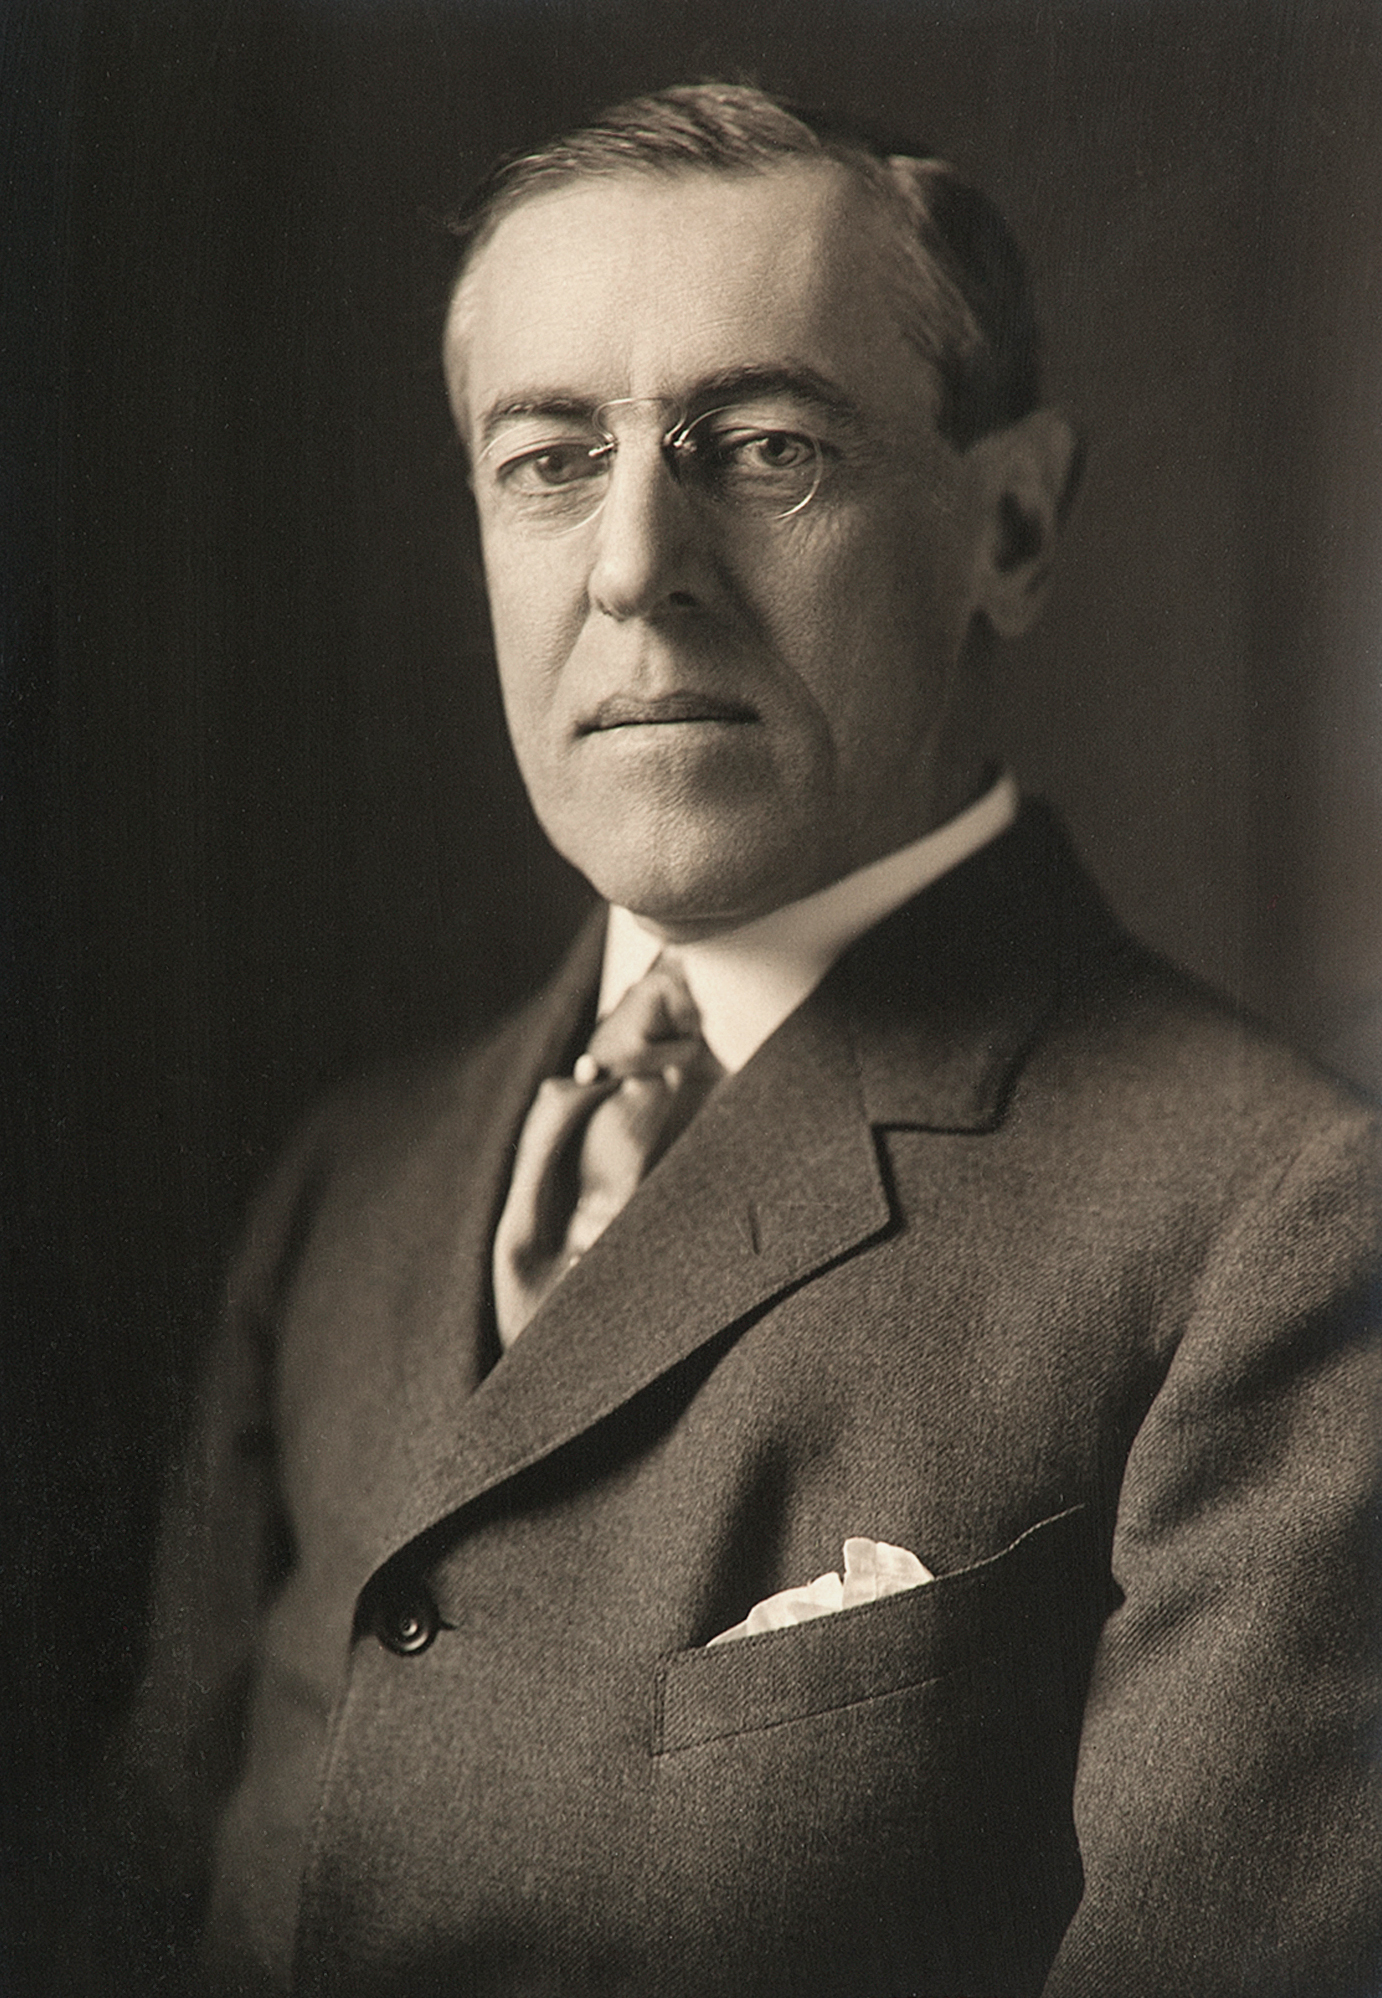 a biography of thomas woodrow wilson the president of the united states President thomas woodrow wilson twenty-eighth president of the united states interesting facts woodrow wilson tried to unite many countries in the league of nations - for all practical purposes, it failed.